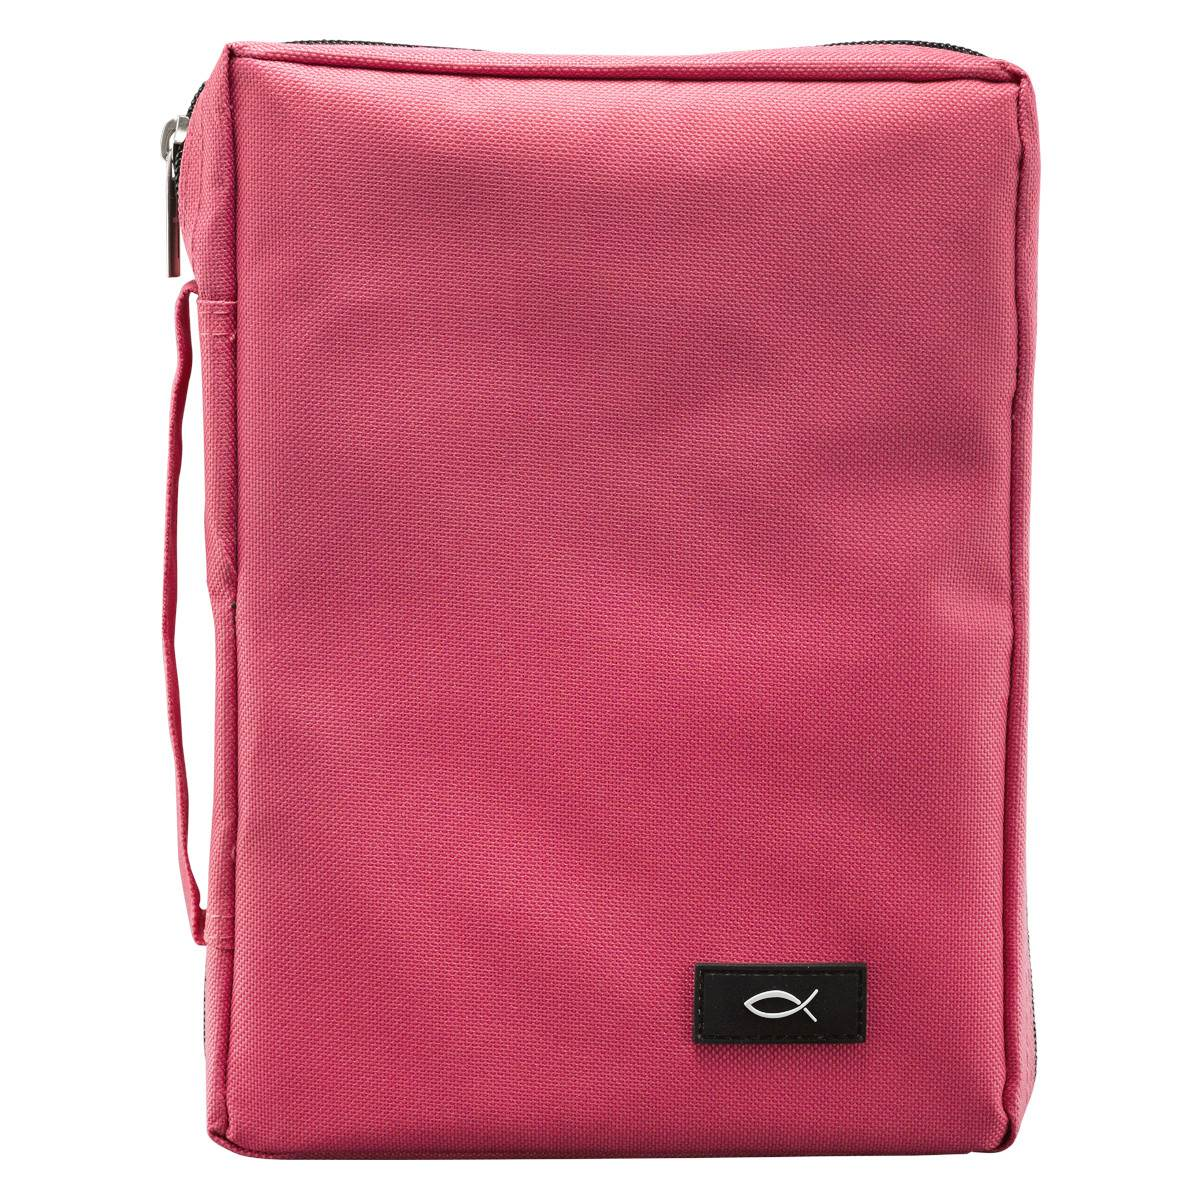 Medium Pink Bible Cover